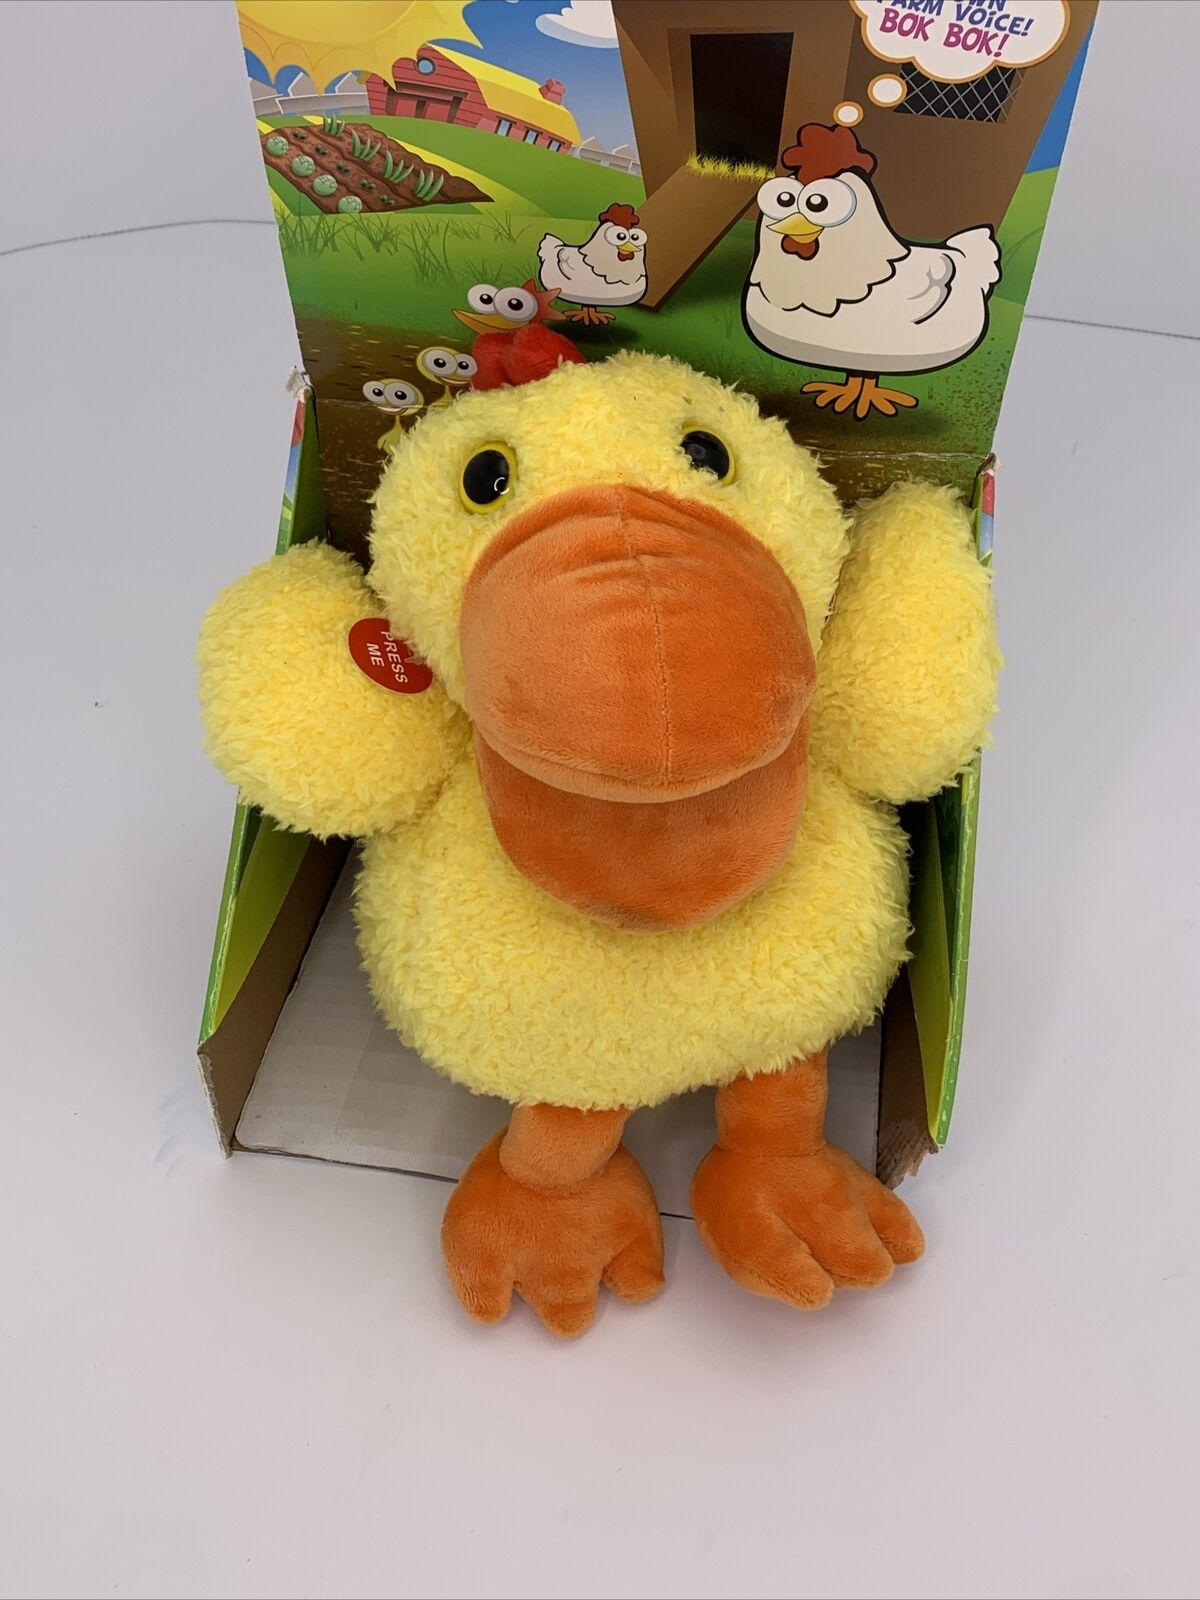 Mindscope Sing-A-Song Puppets Electronic Singing Chicken Puppet With Sounds